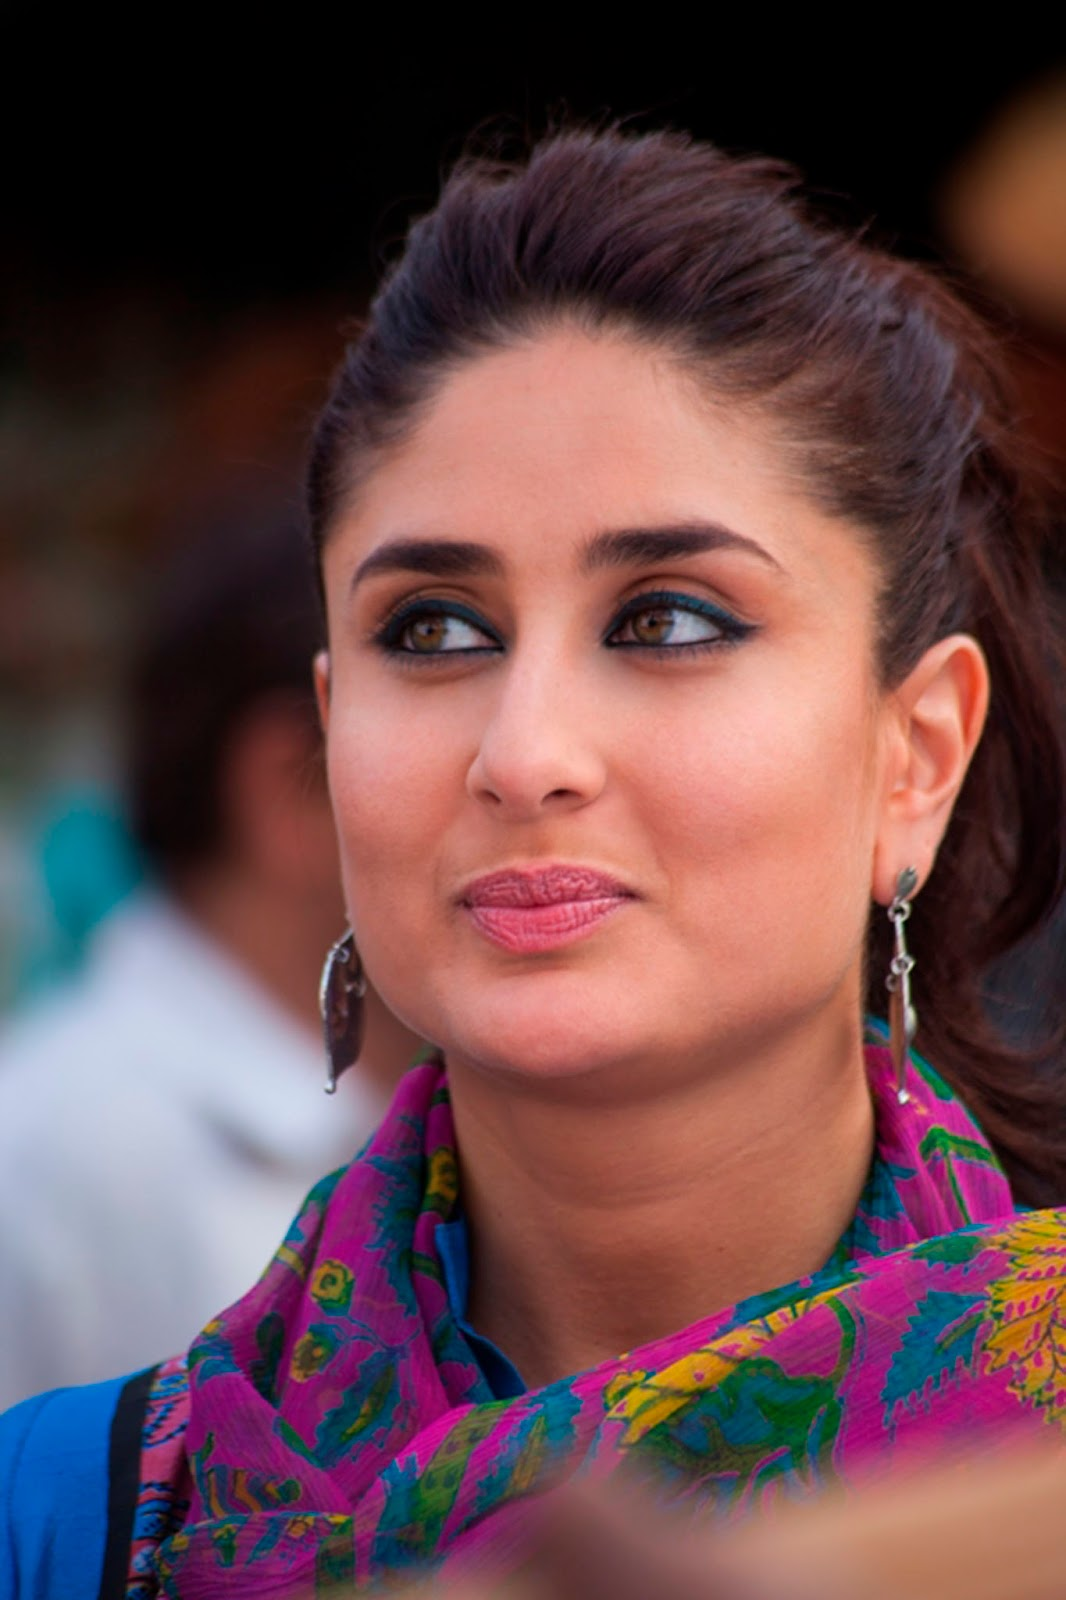 kareena kapoor filmikareena kapoor baby, kareena kapoor filmi, kareena kapoor saif ali khan, kareena kapoor khan, kareena kapoor 2017, kareena kapoor biography, kareena kapoor mp3, kareena kapoor films, kareena kapoor son, kareena kapoor biografia, kareena kapoor child, kareena kapoor kimdir, kareena kapoor klip, kareena kapoor family, kareena kapoor filmleri, kareena kapoor filmography, kareena kapoor performance, kareena kapoor and husband, kareena kapoor wiki, kareena kapoor and salman khan